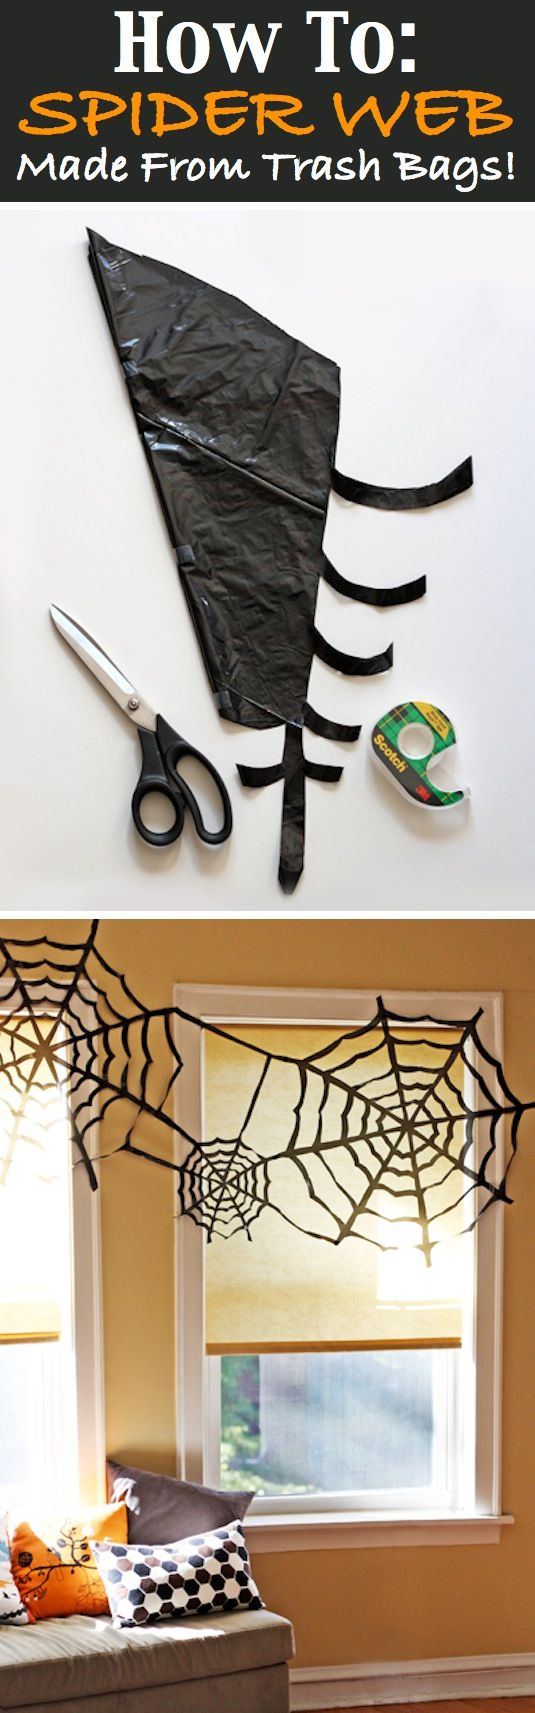 16+ Easy But Awesome Homemade Halloween Decorations (With Photo Tutorials)  | Homemade halloween decorations, Homemade halloween and Trash bag